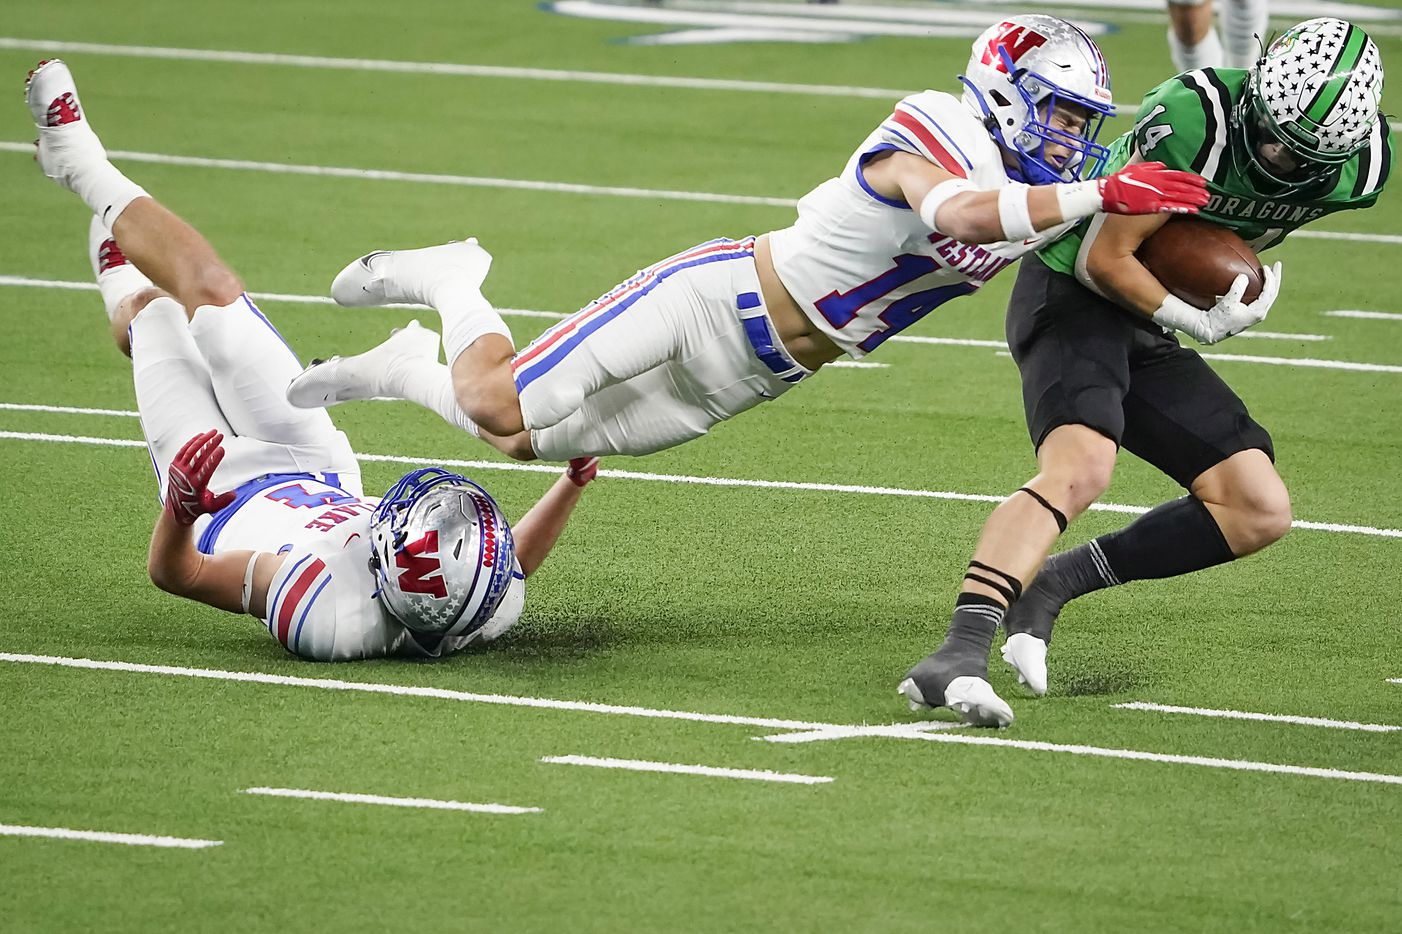 Southlake Carroll wide receiver Brady Boyd (14) breaks the tackles of both Austin Westlake defensive backs Michael Taaffe (14) and Jax Crockett (4) on a 49-yard touchdown play during the first quarter of the Class 6A Division I state football championship game at AT&T Stadium on Saturday, Jan. 16, 2021, in Arlington, Texas.